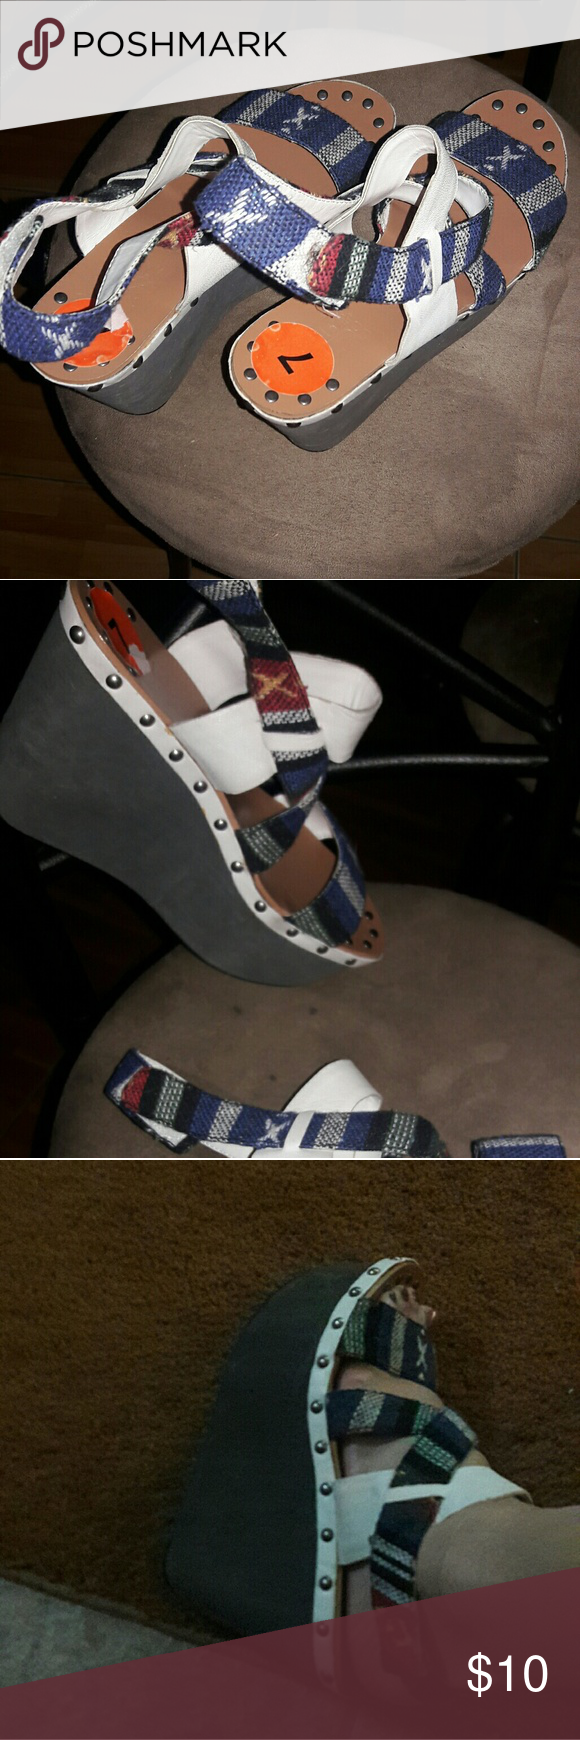 Scrappy sandals New. Never worn. They are too high for me. joes Shoes Sandals